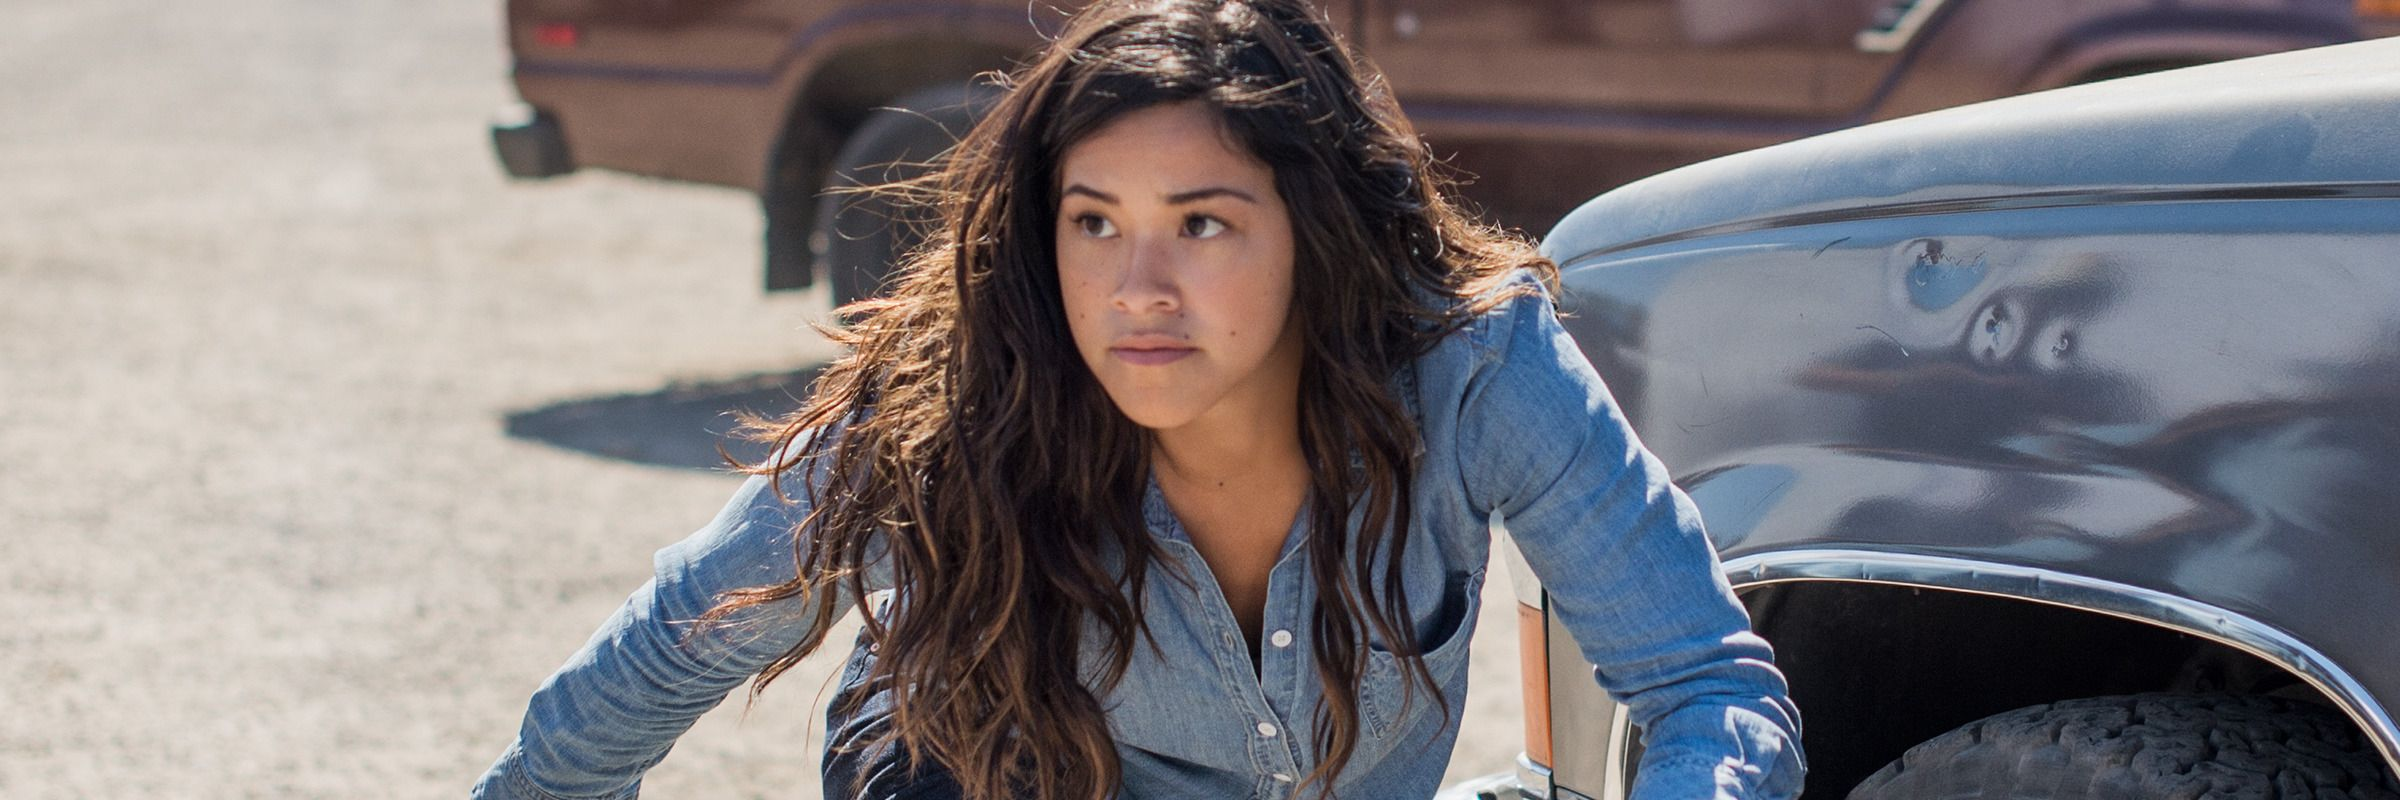 Miss Bala Full Movie Torrent Download 2019